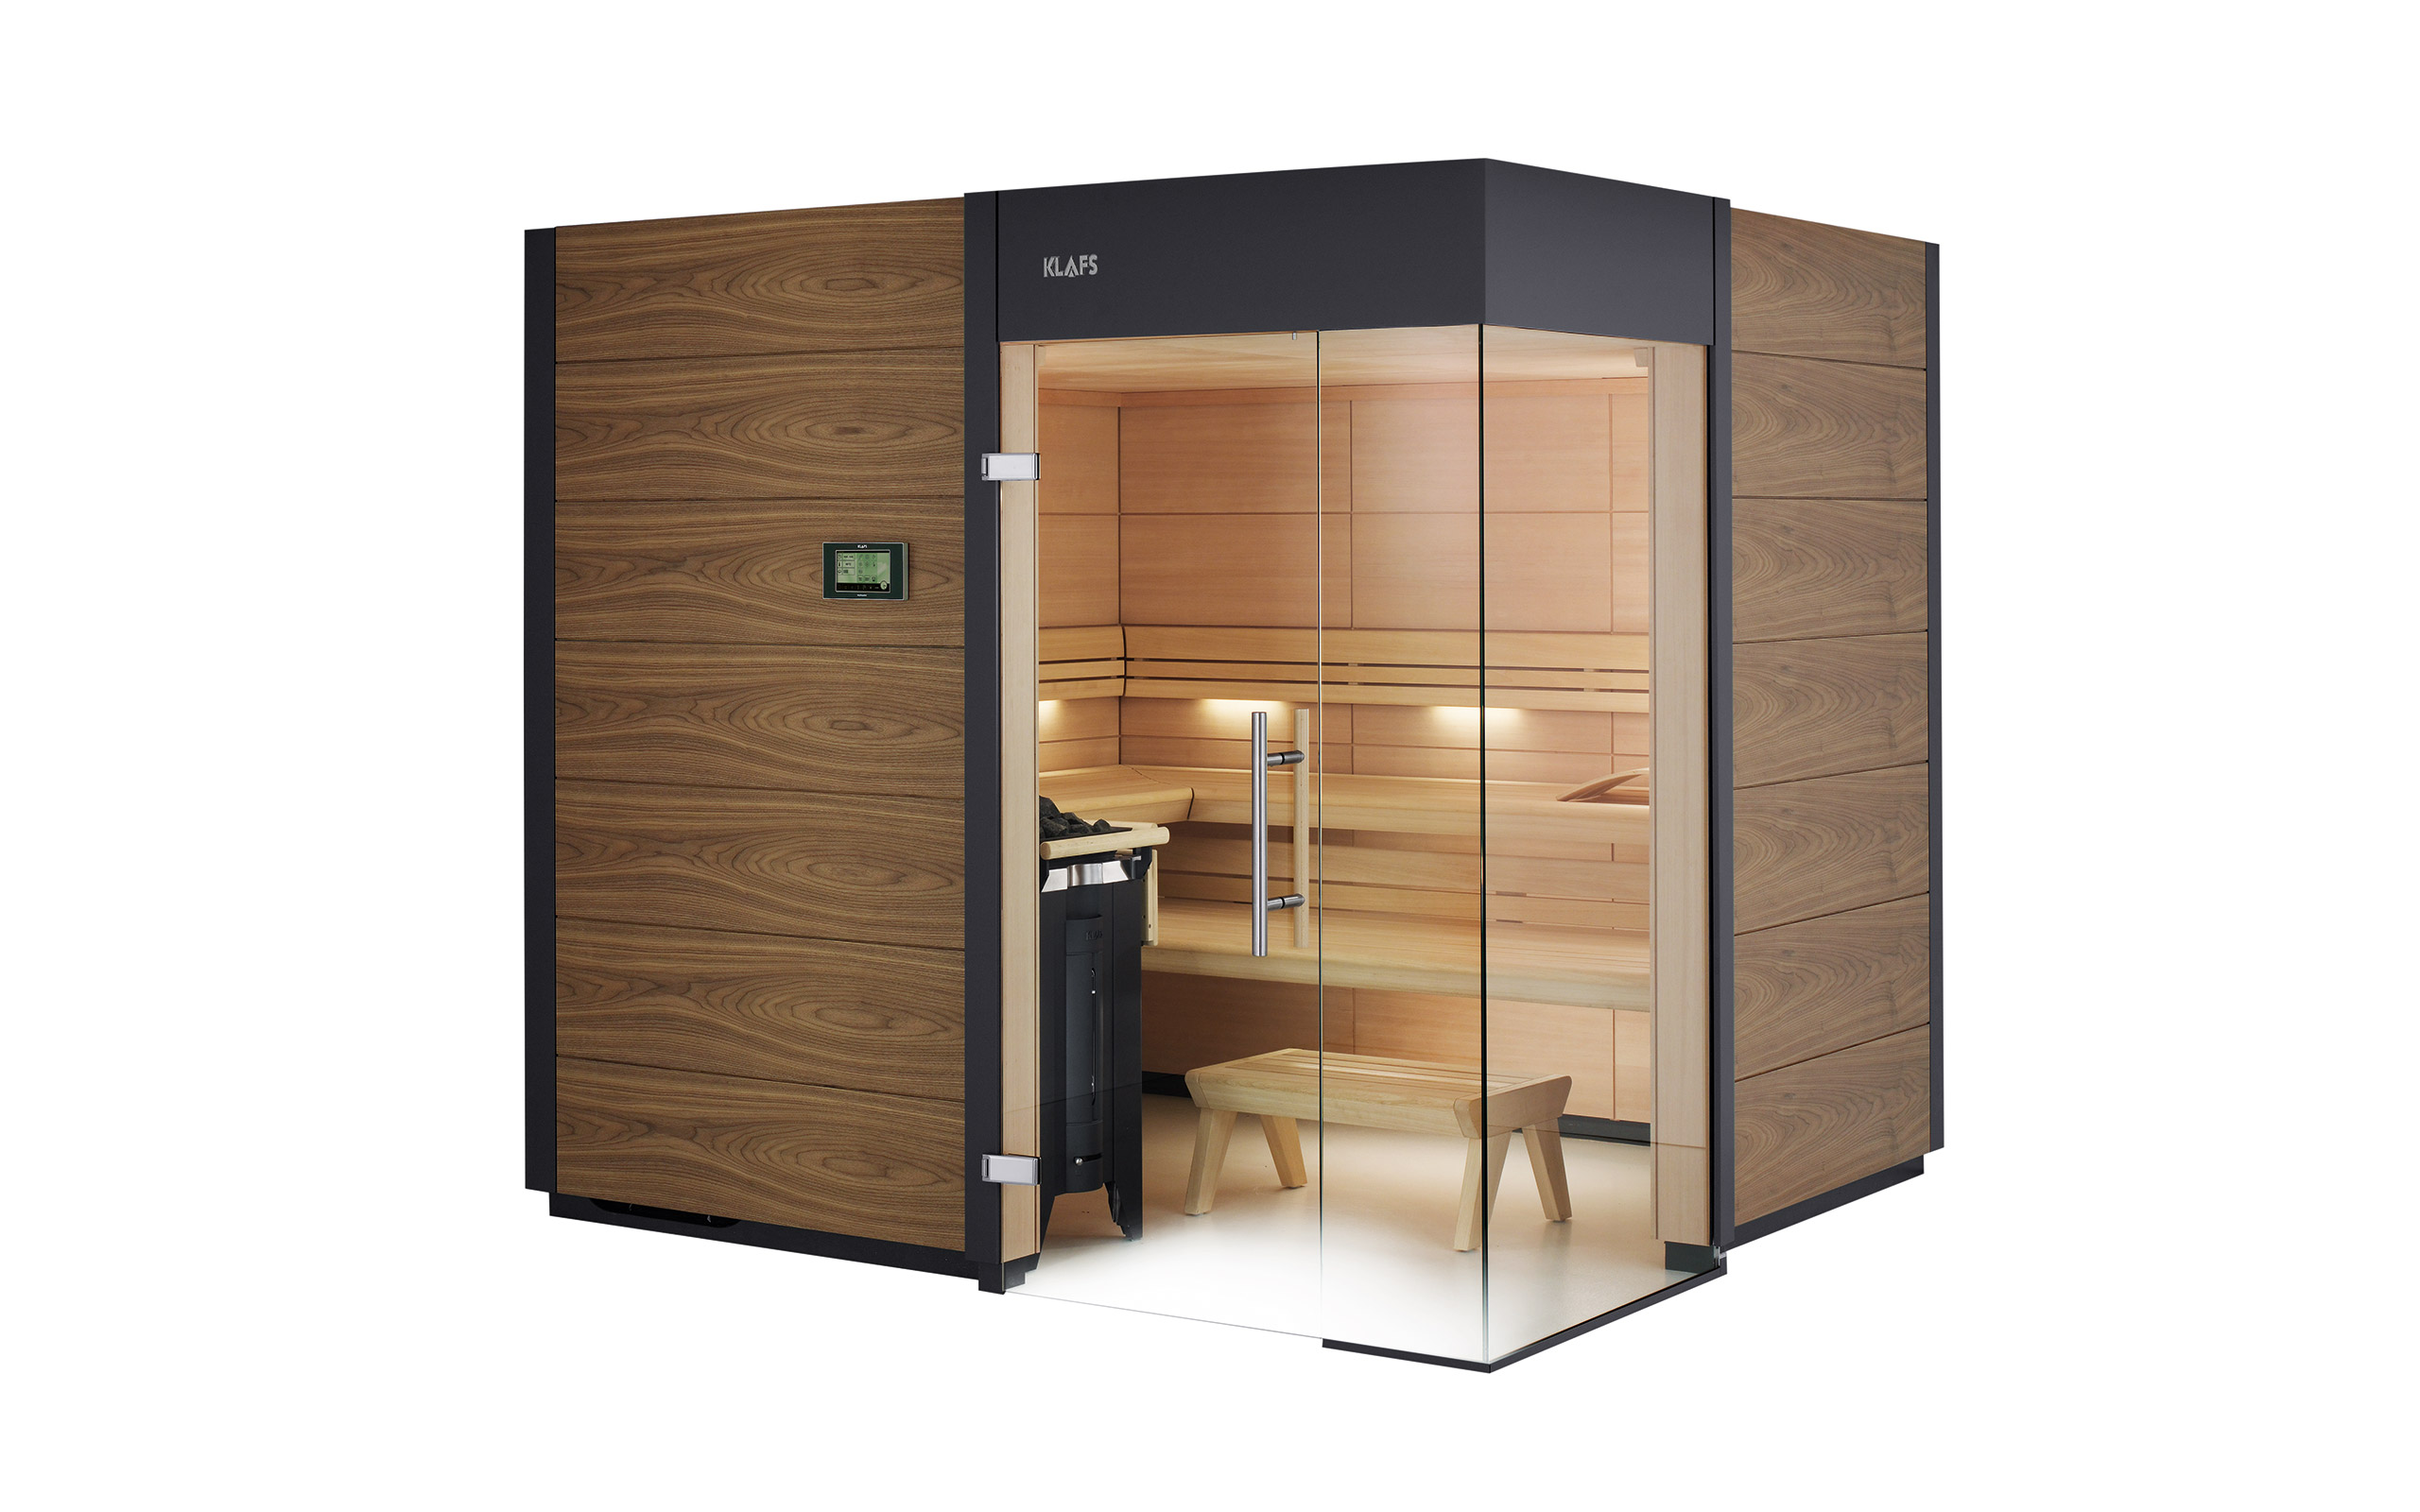 design sauna ventano die moderne und zeitlose sauna. Black Bedroom Furniture Sets. Home Design Ideas